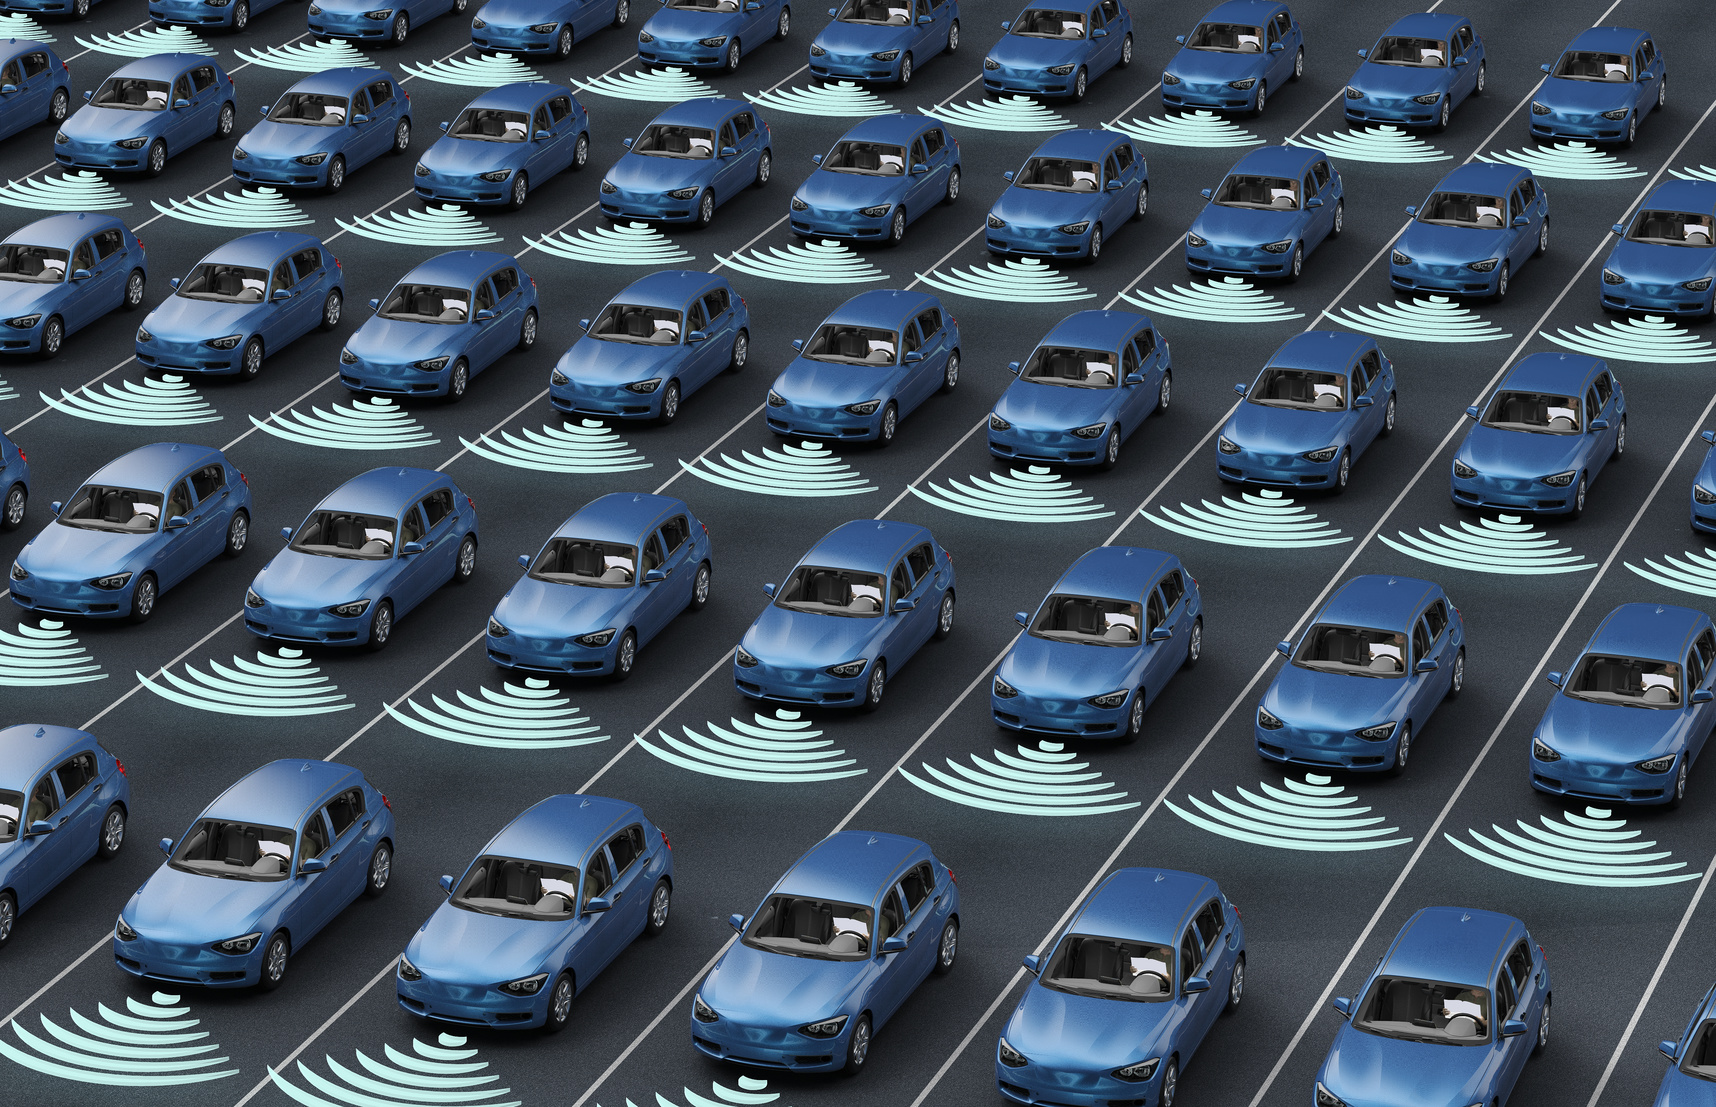 The Moral Dilemma Of Self Driving Cars